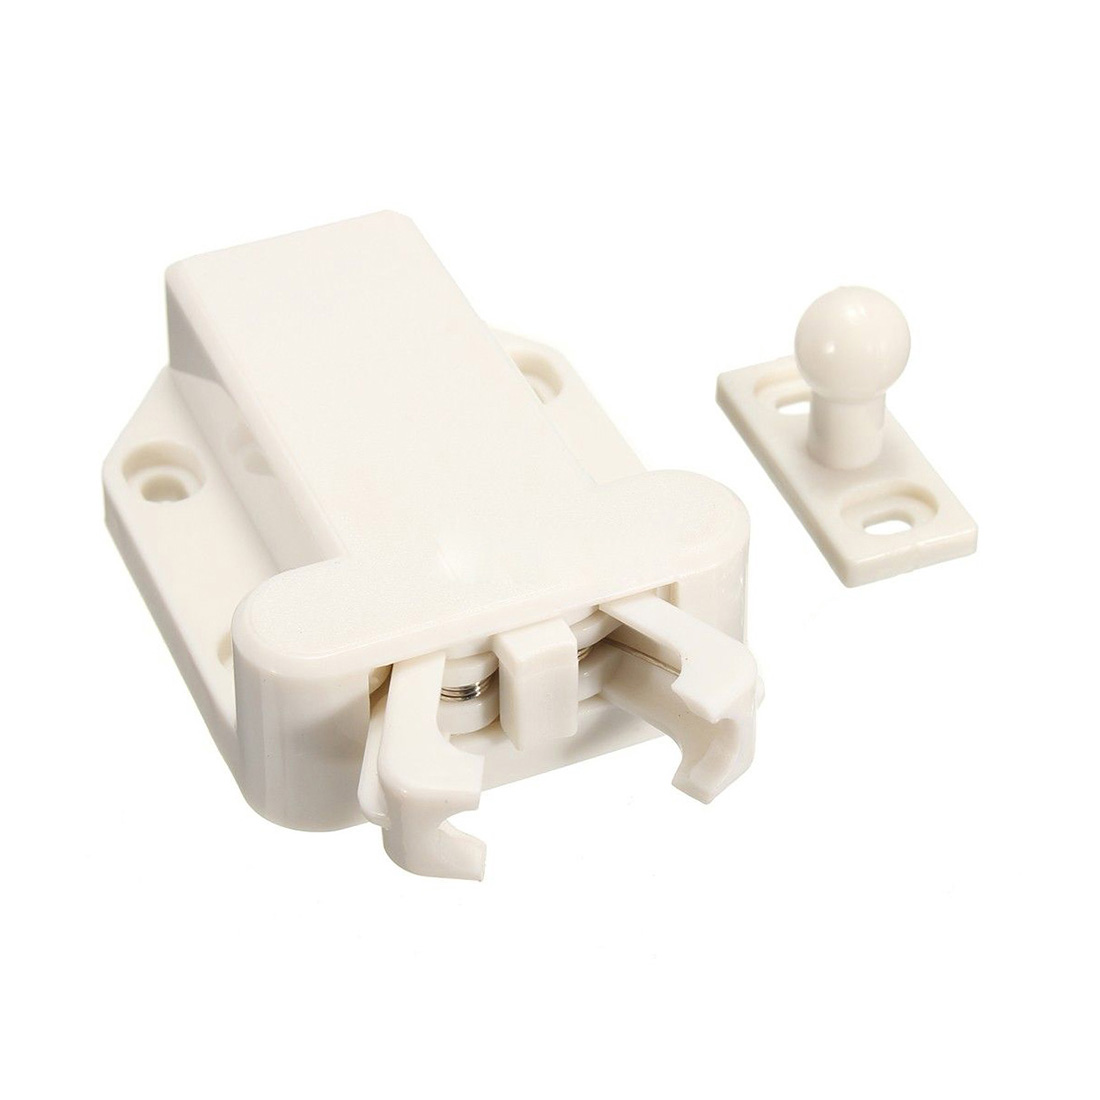 10X Push To Open Beetles Drawer Cabinet Latch Catch Touch Release Cupboard White push to open beetles drawer cabinet latch catch touch release kitchen cupboard new arrival high quality